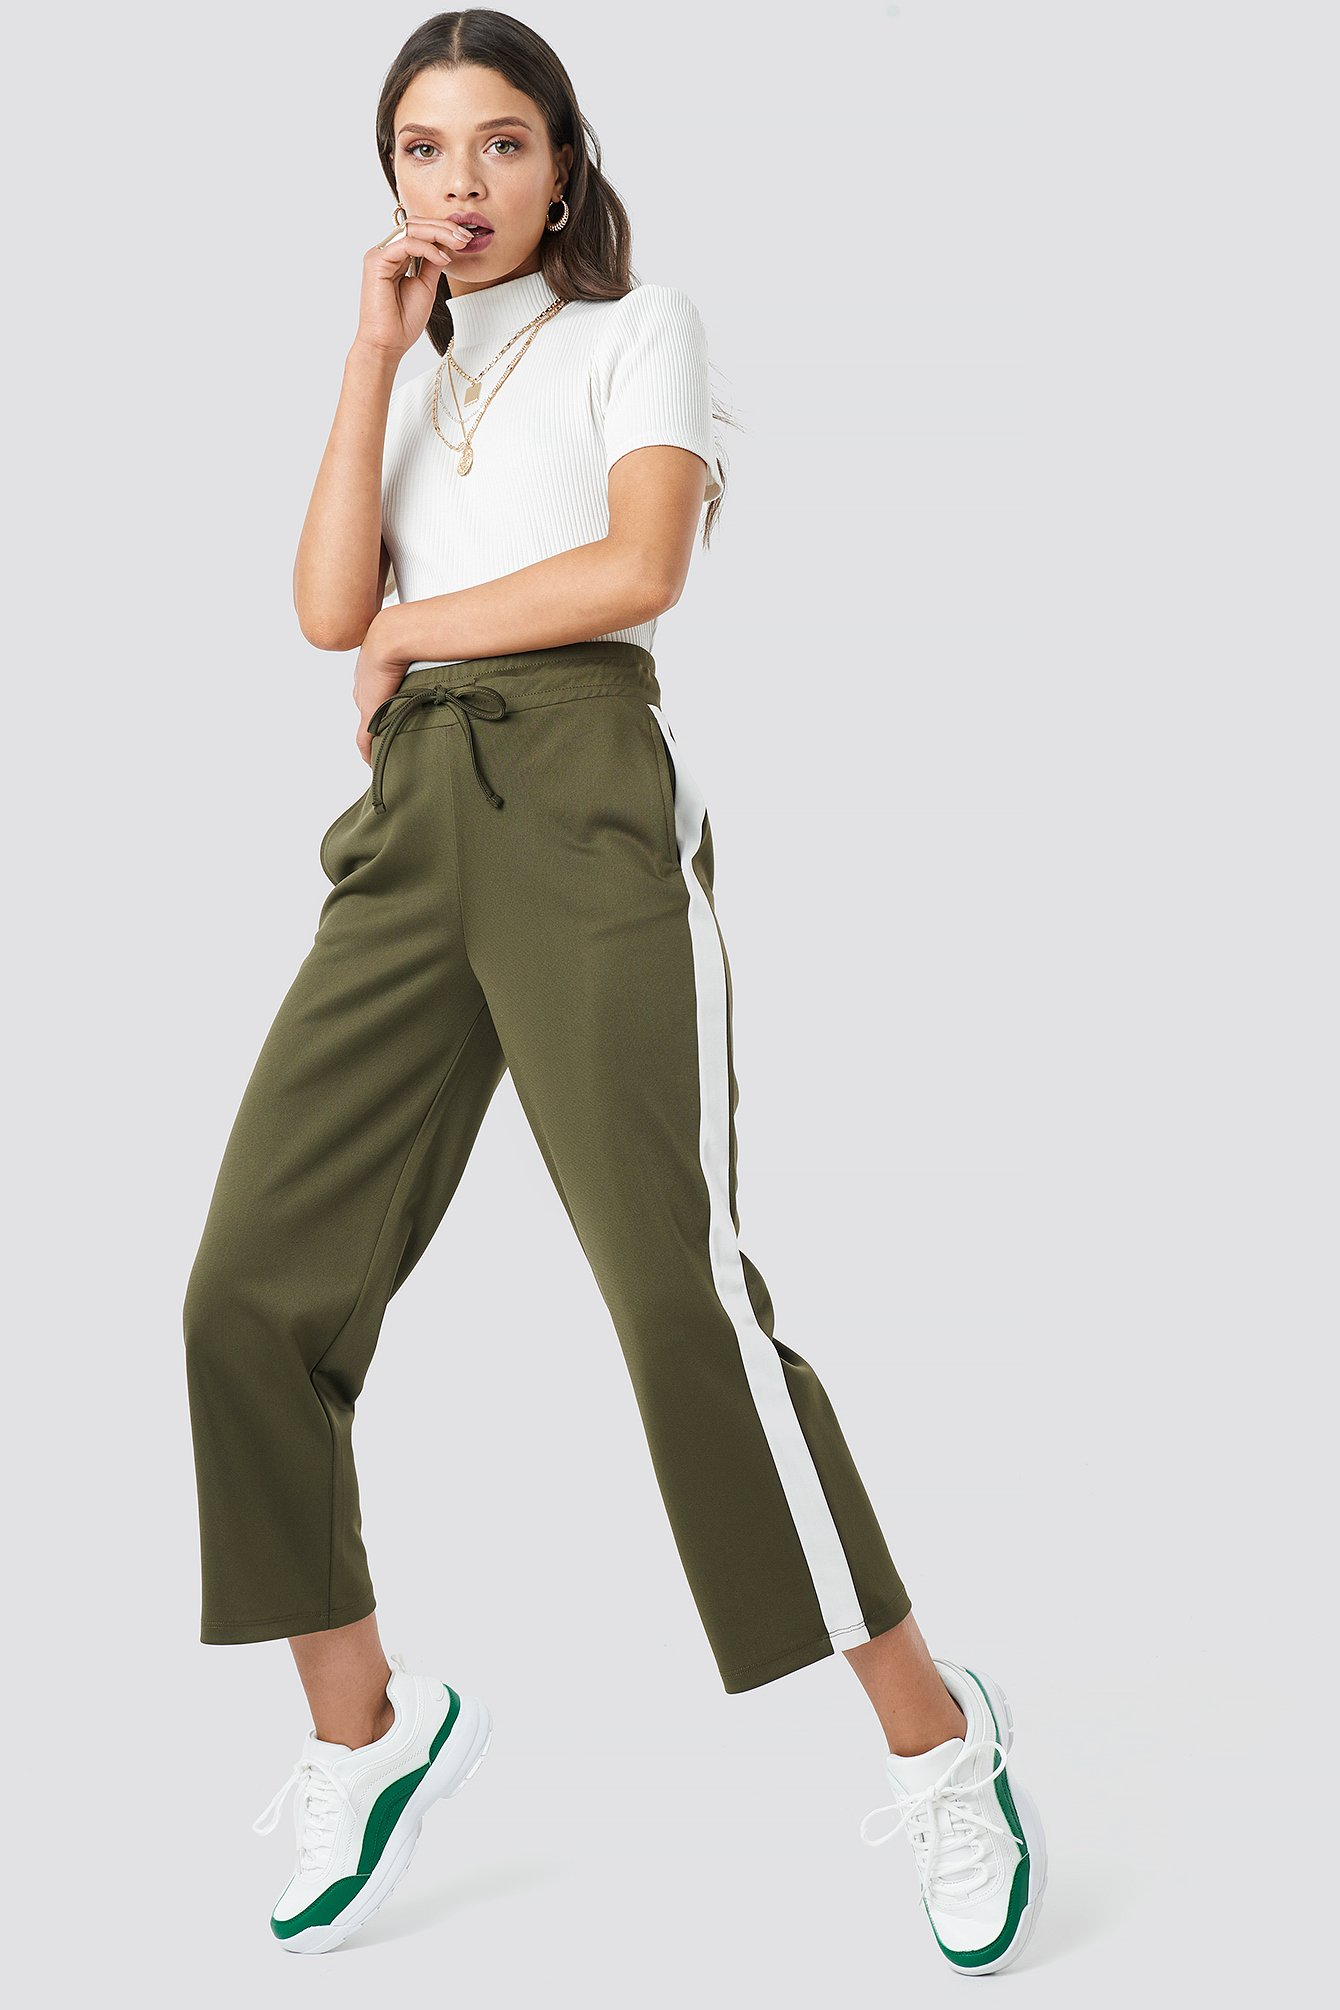 astrid olsen x na-kd -  Side Stripe Pants - Green